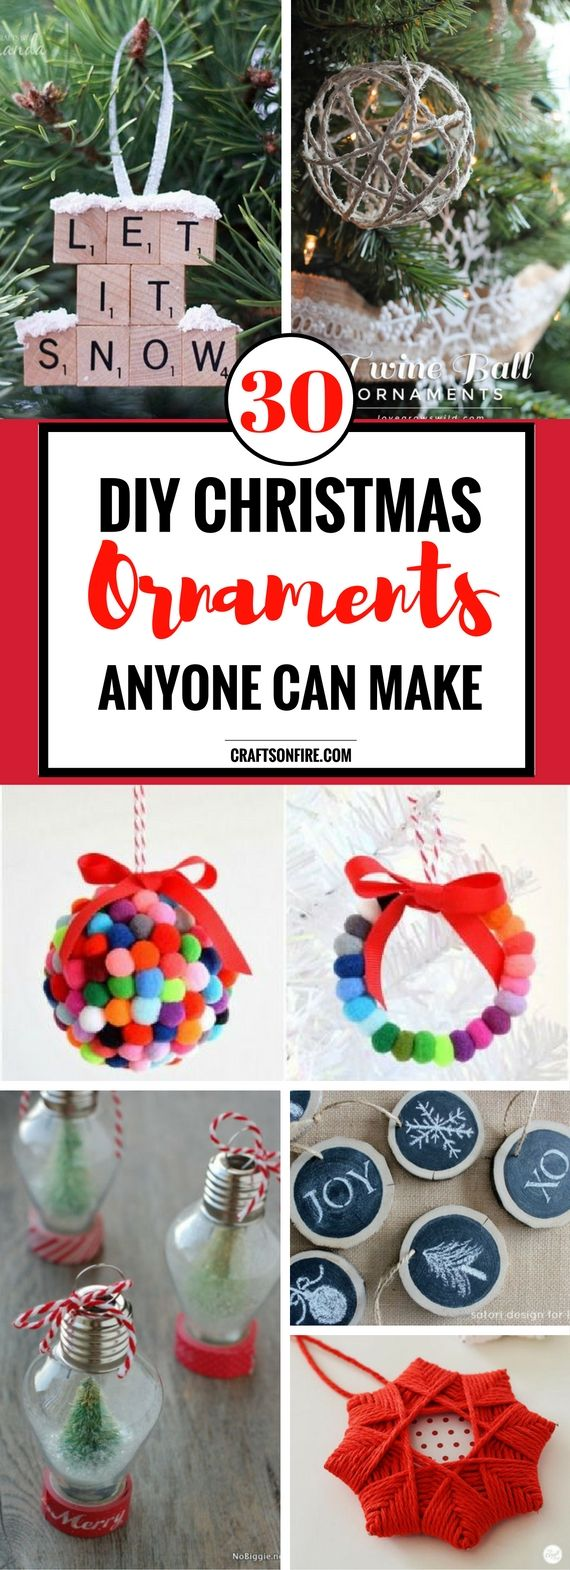 Ready for Christmas yet? If you're looking for EASY and CHEAP diy projects to decorate your home this Christmas then you have to check out this AWESOME list of diy Christmas Ornaments. The wooden slates and snow globes are EPIC!